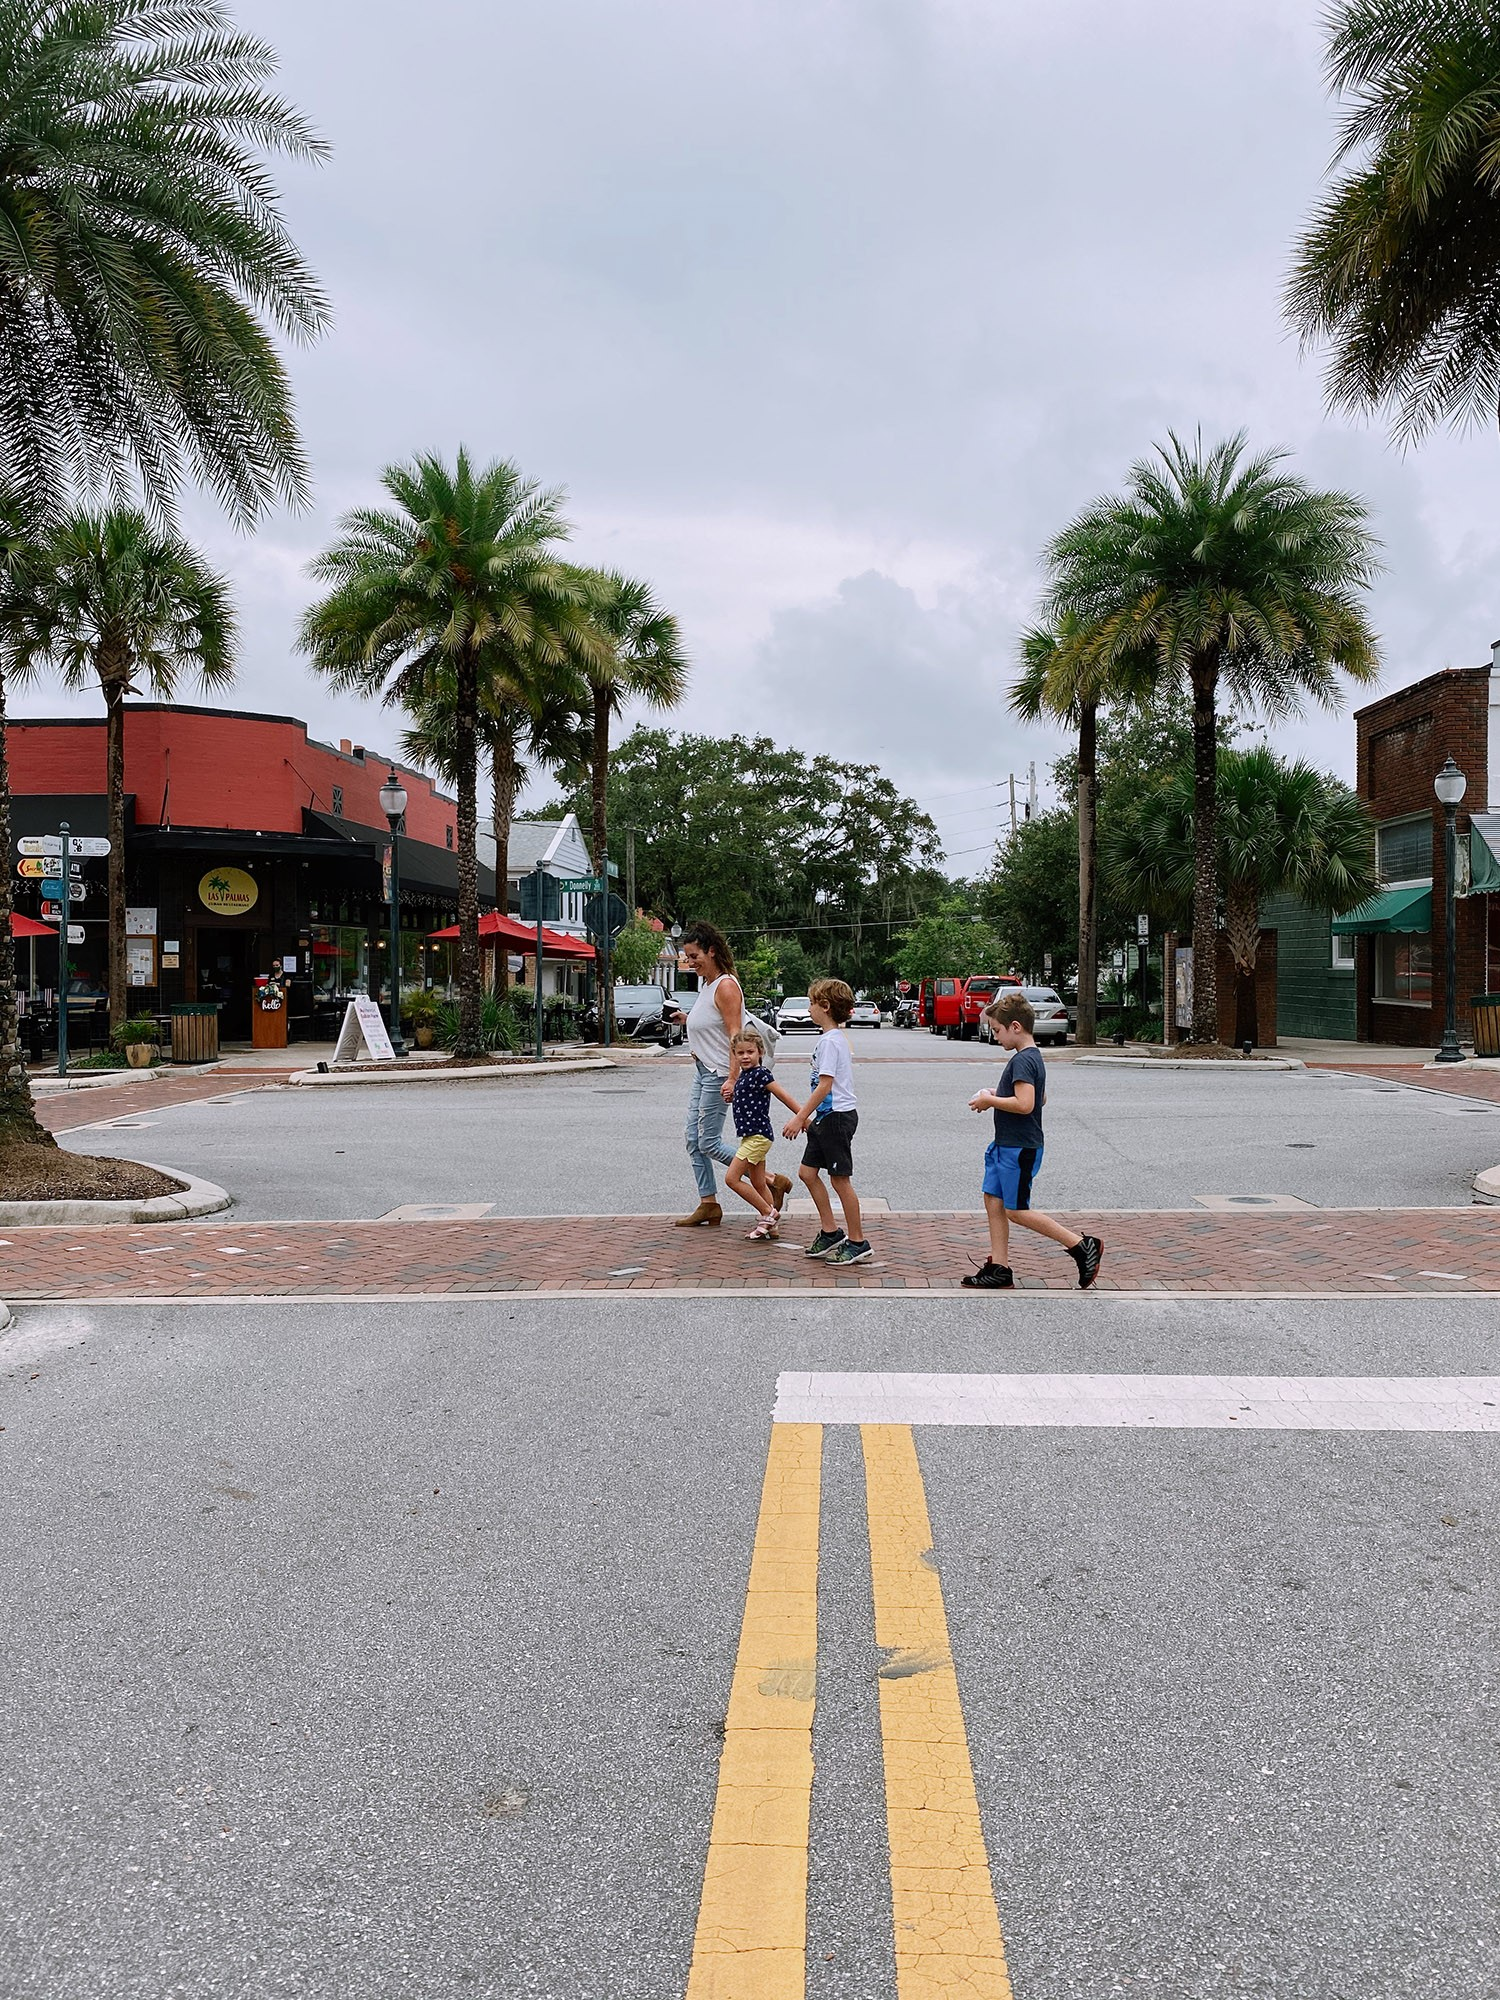 Spectacular Lake County, Florida Staycation Ideas for the Family! Downtown Mount Dora | Lake County by popular Florida blog, Fresh Mommy Blog: image of a mom and her kids walking a cross a street.